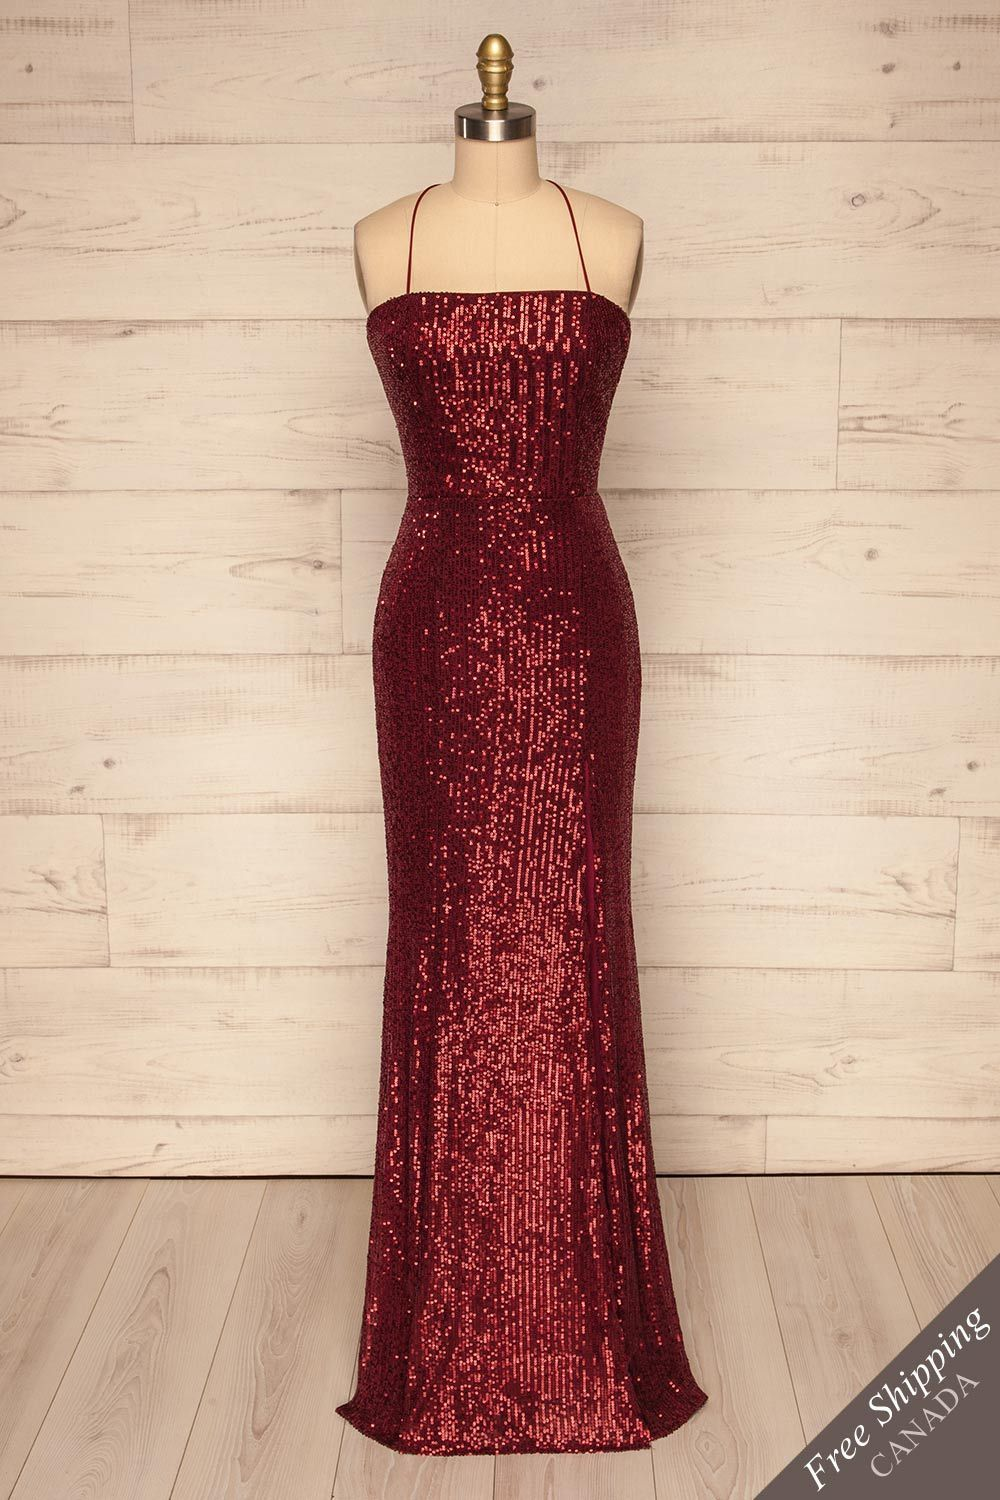 Askim Ruby From Boutique 1861 Dresses Red Sequin Dress Prom Red Sequin Dress [ 1500 x 1000 Pixel ]